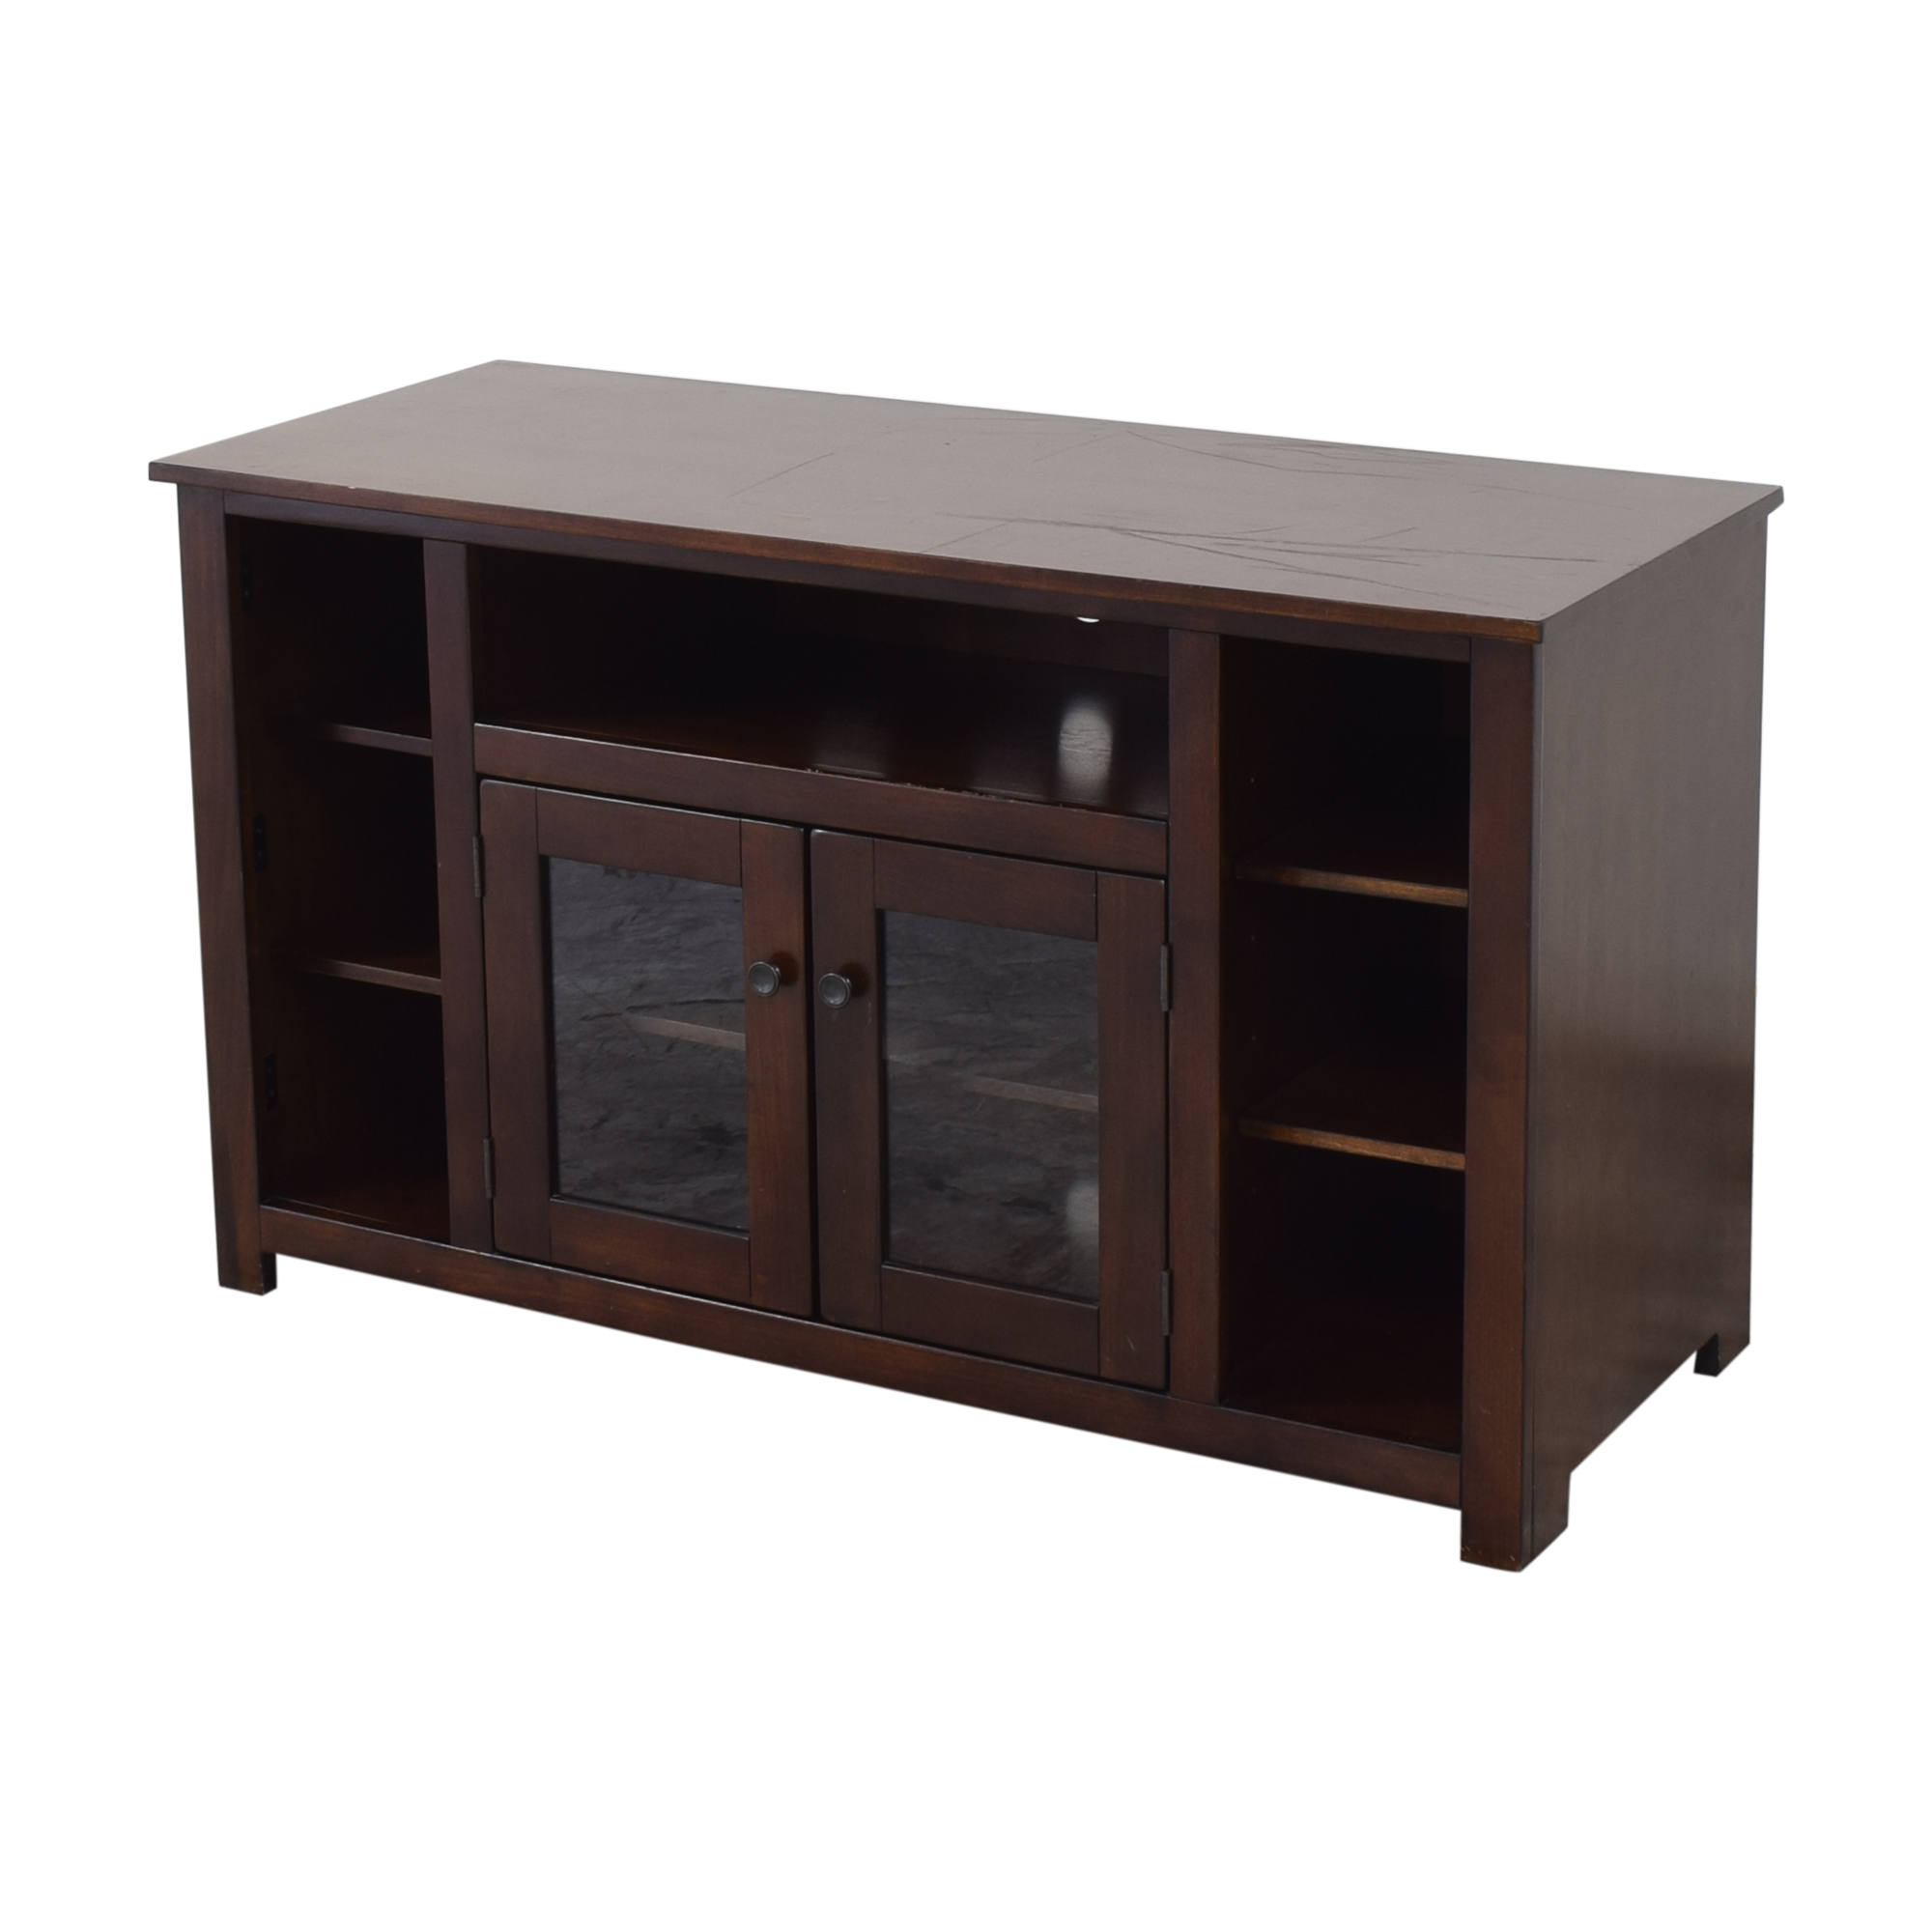 shop Ashley Furniture Ashley Furniture Signature Design Media Console online